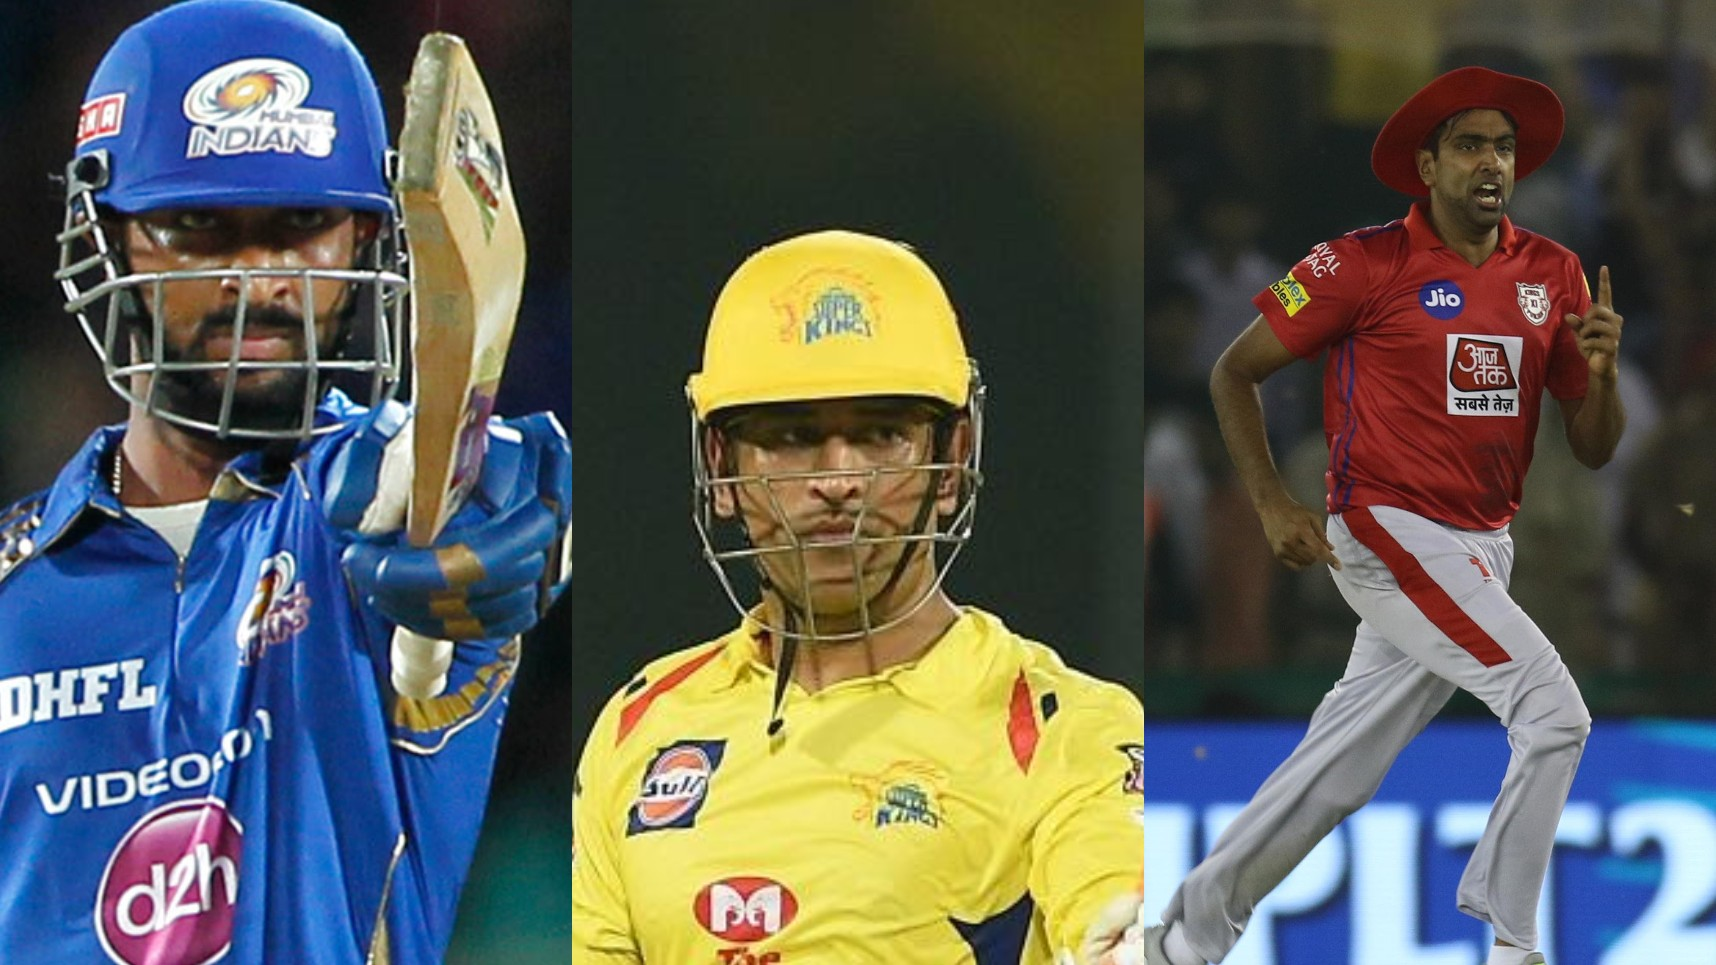 IPL 2020: 5 players who will be out of contention for a T20 World Cup spot if the IPL 13 is canceled